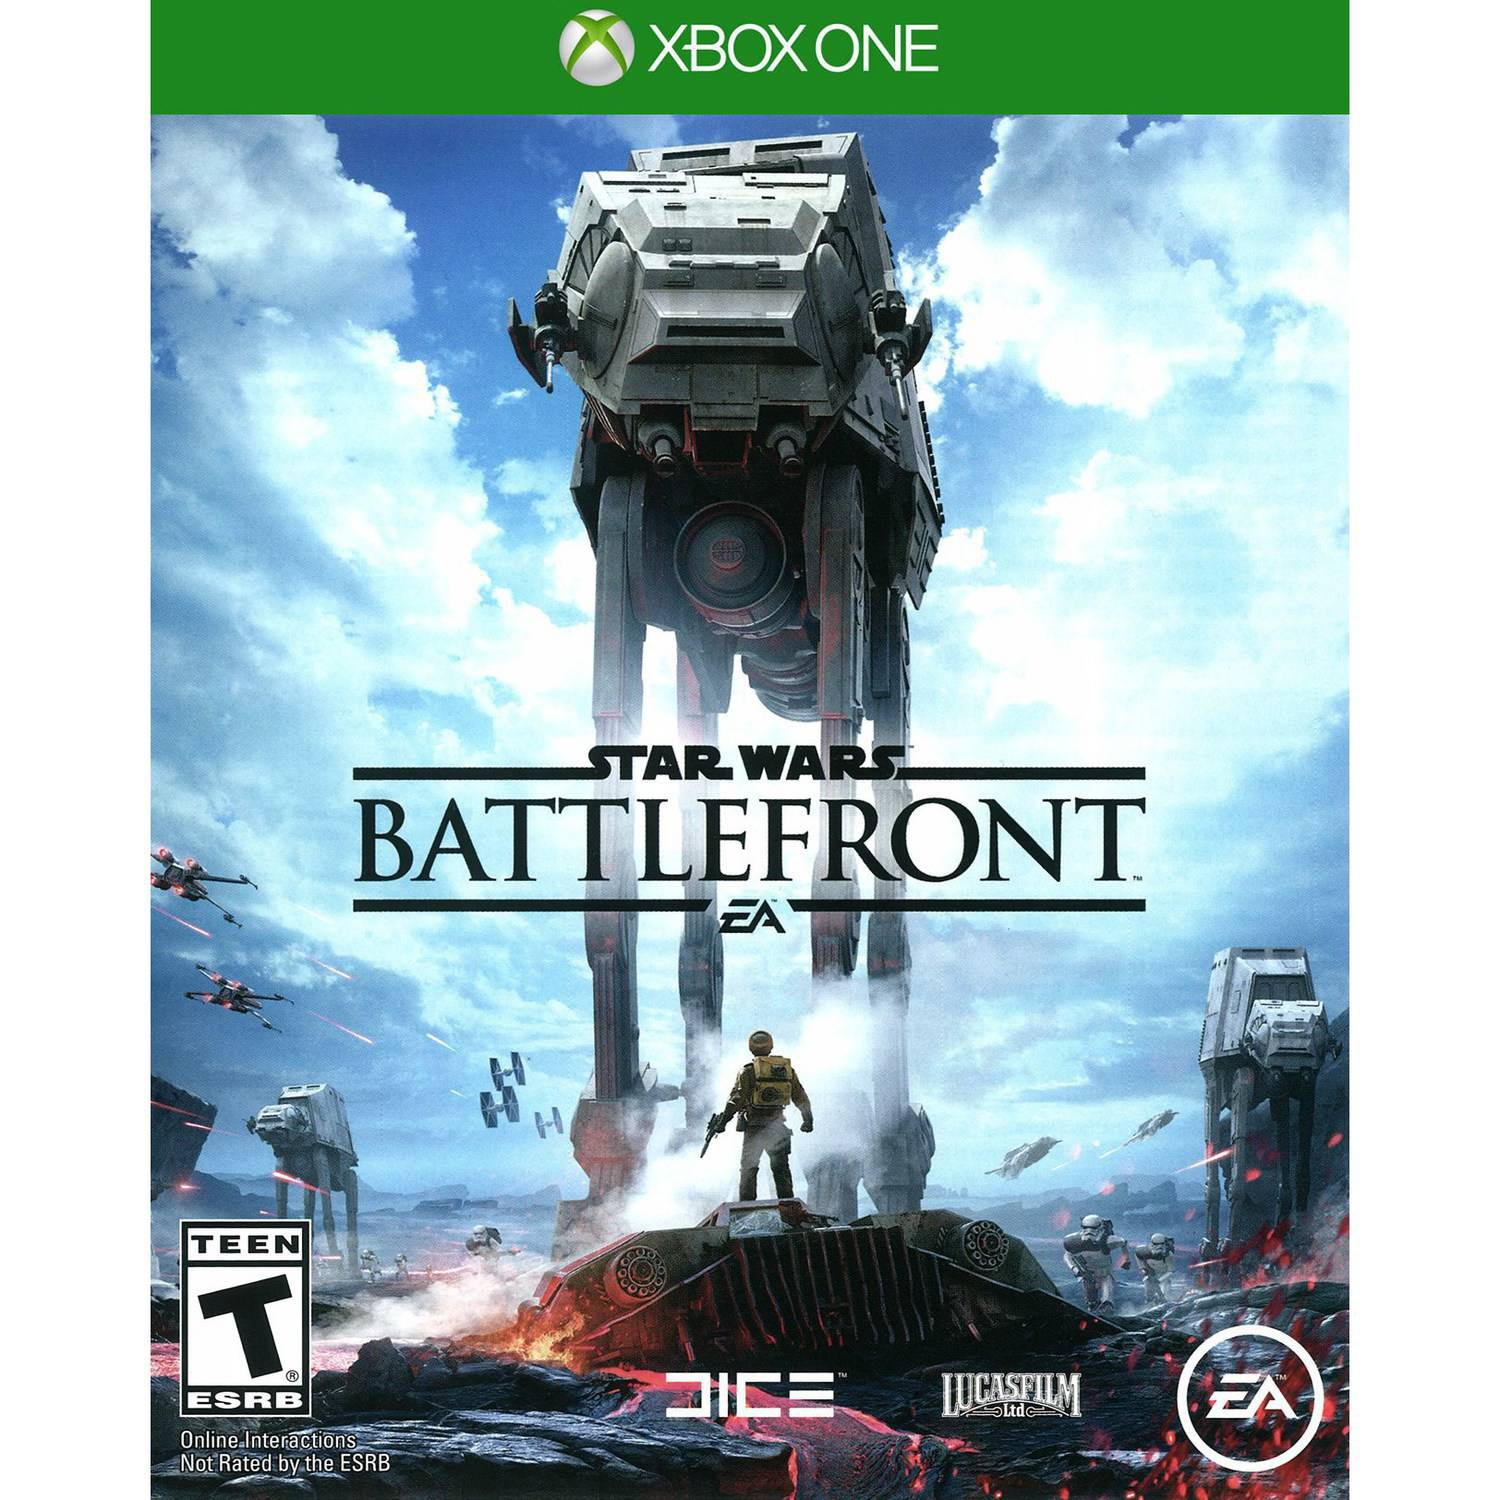 Electronic Arts Star Wars Battlefront (Xbox One) - Pre-Owned